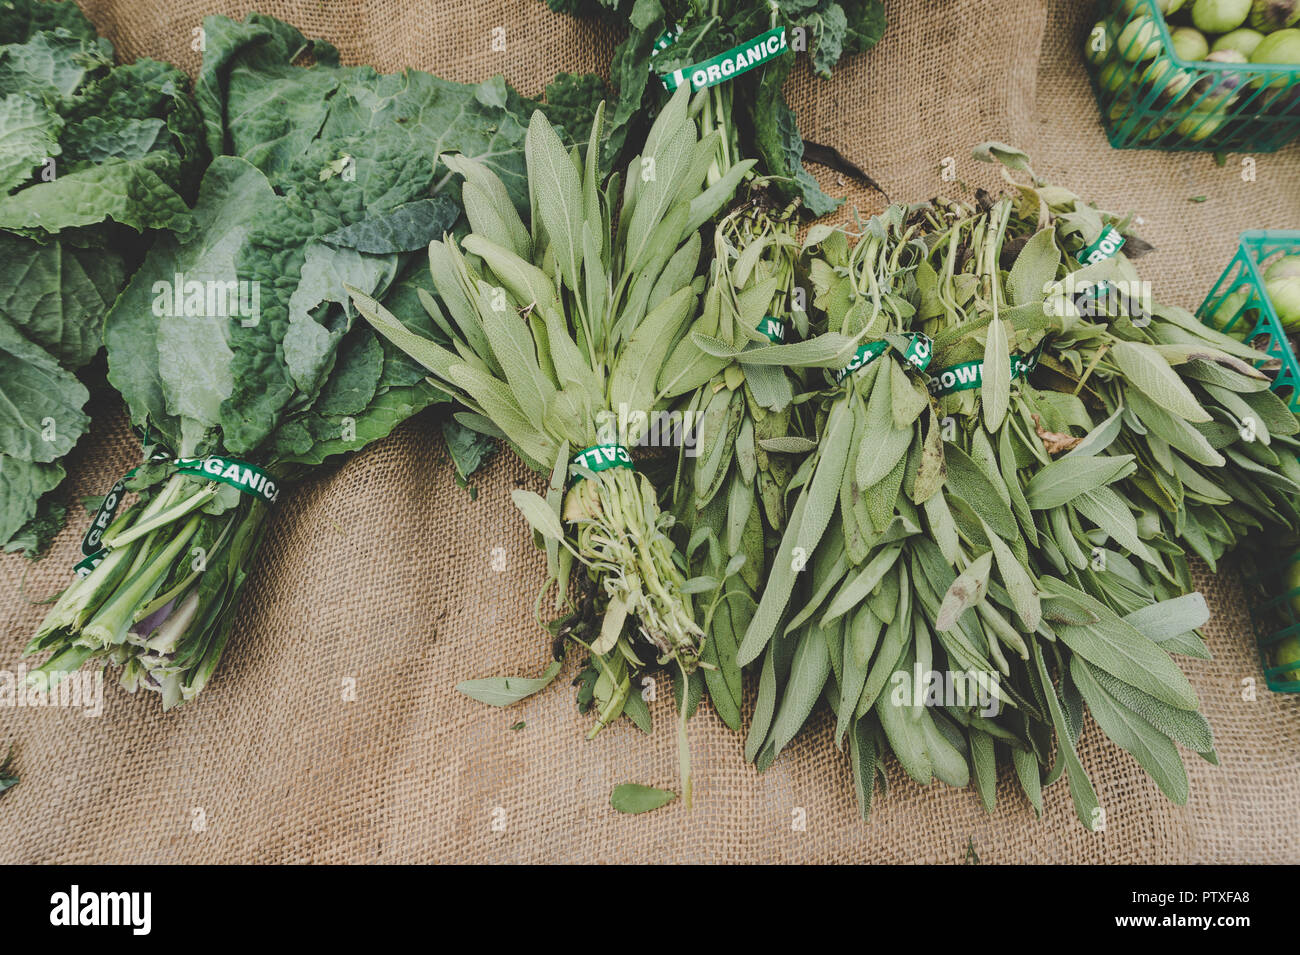 Southern California Farmer's Market display of sage and